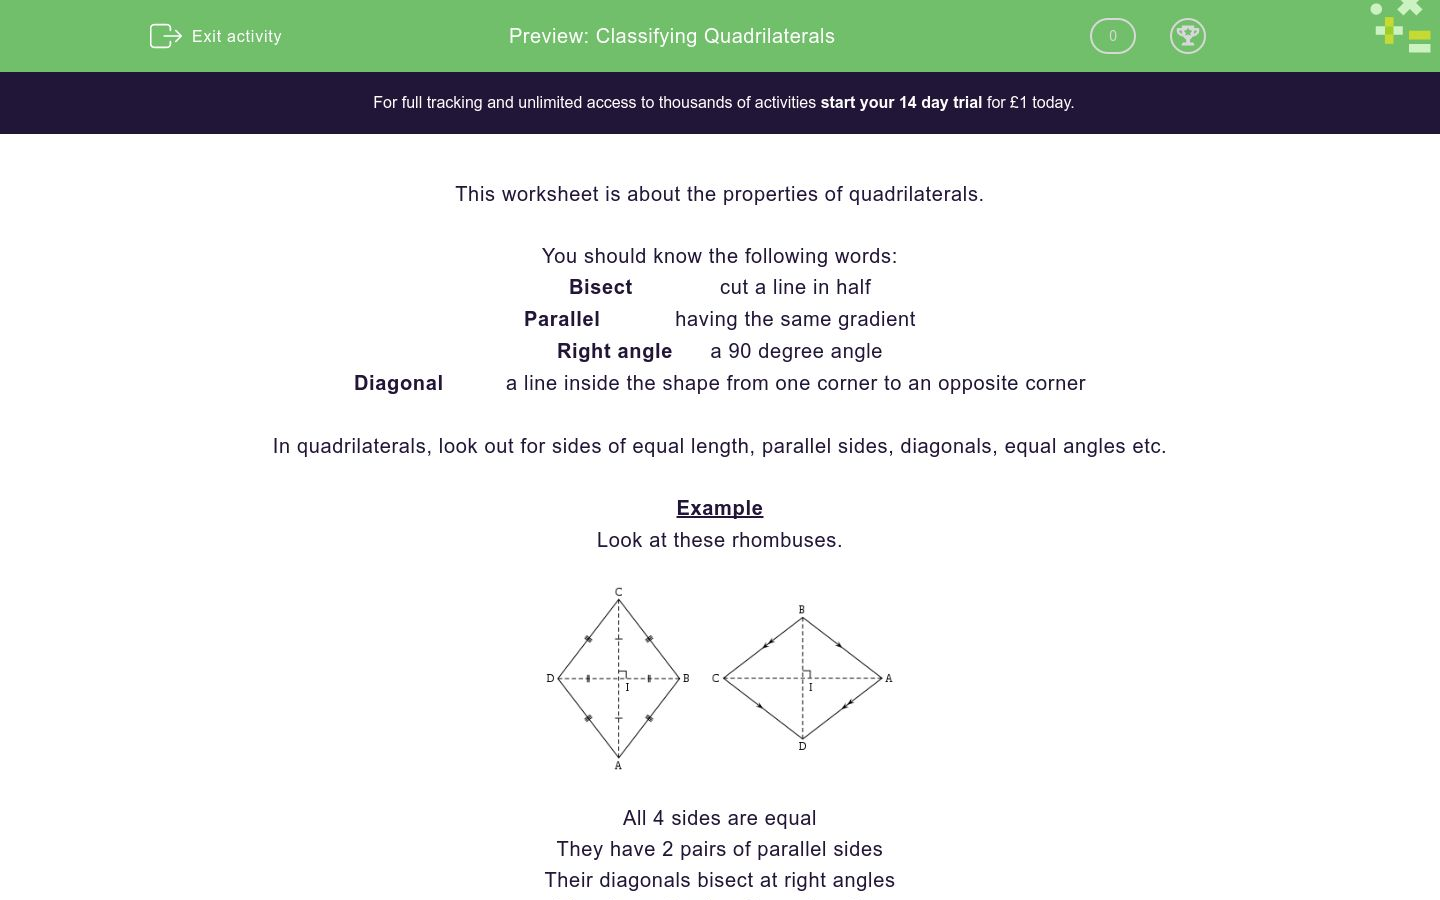 'Classifying Quadrilaterals' worksheet